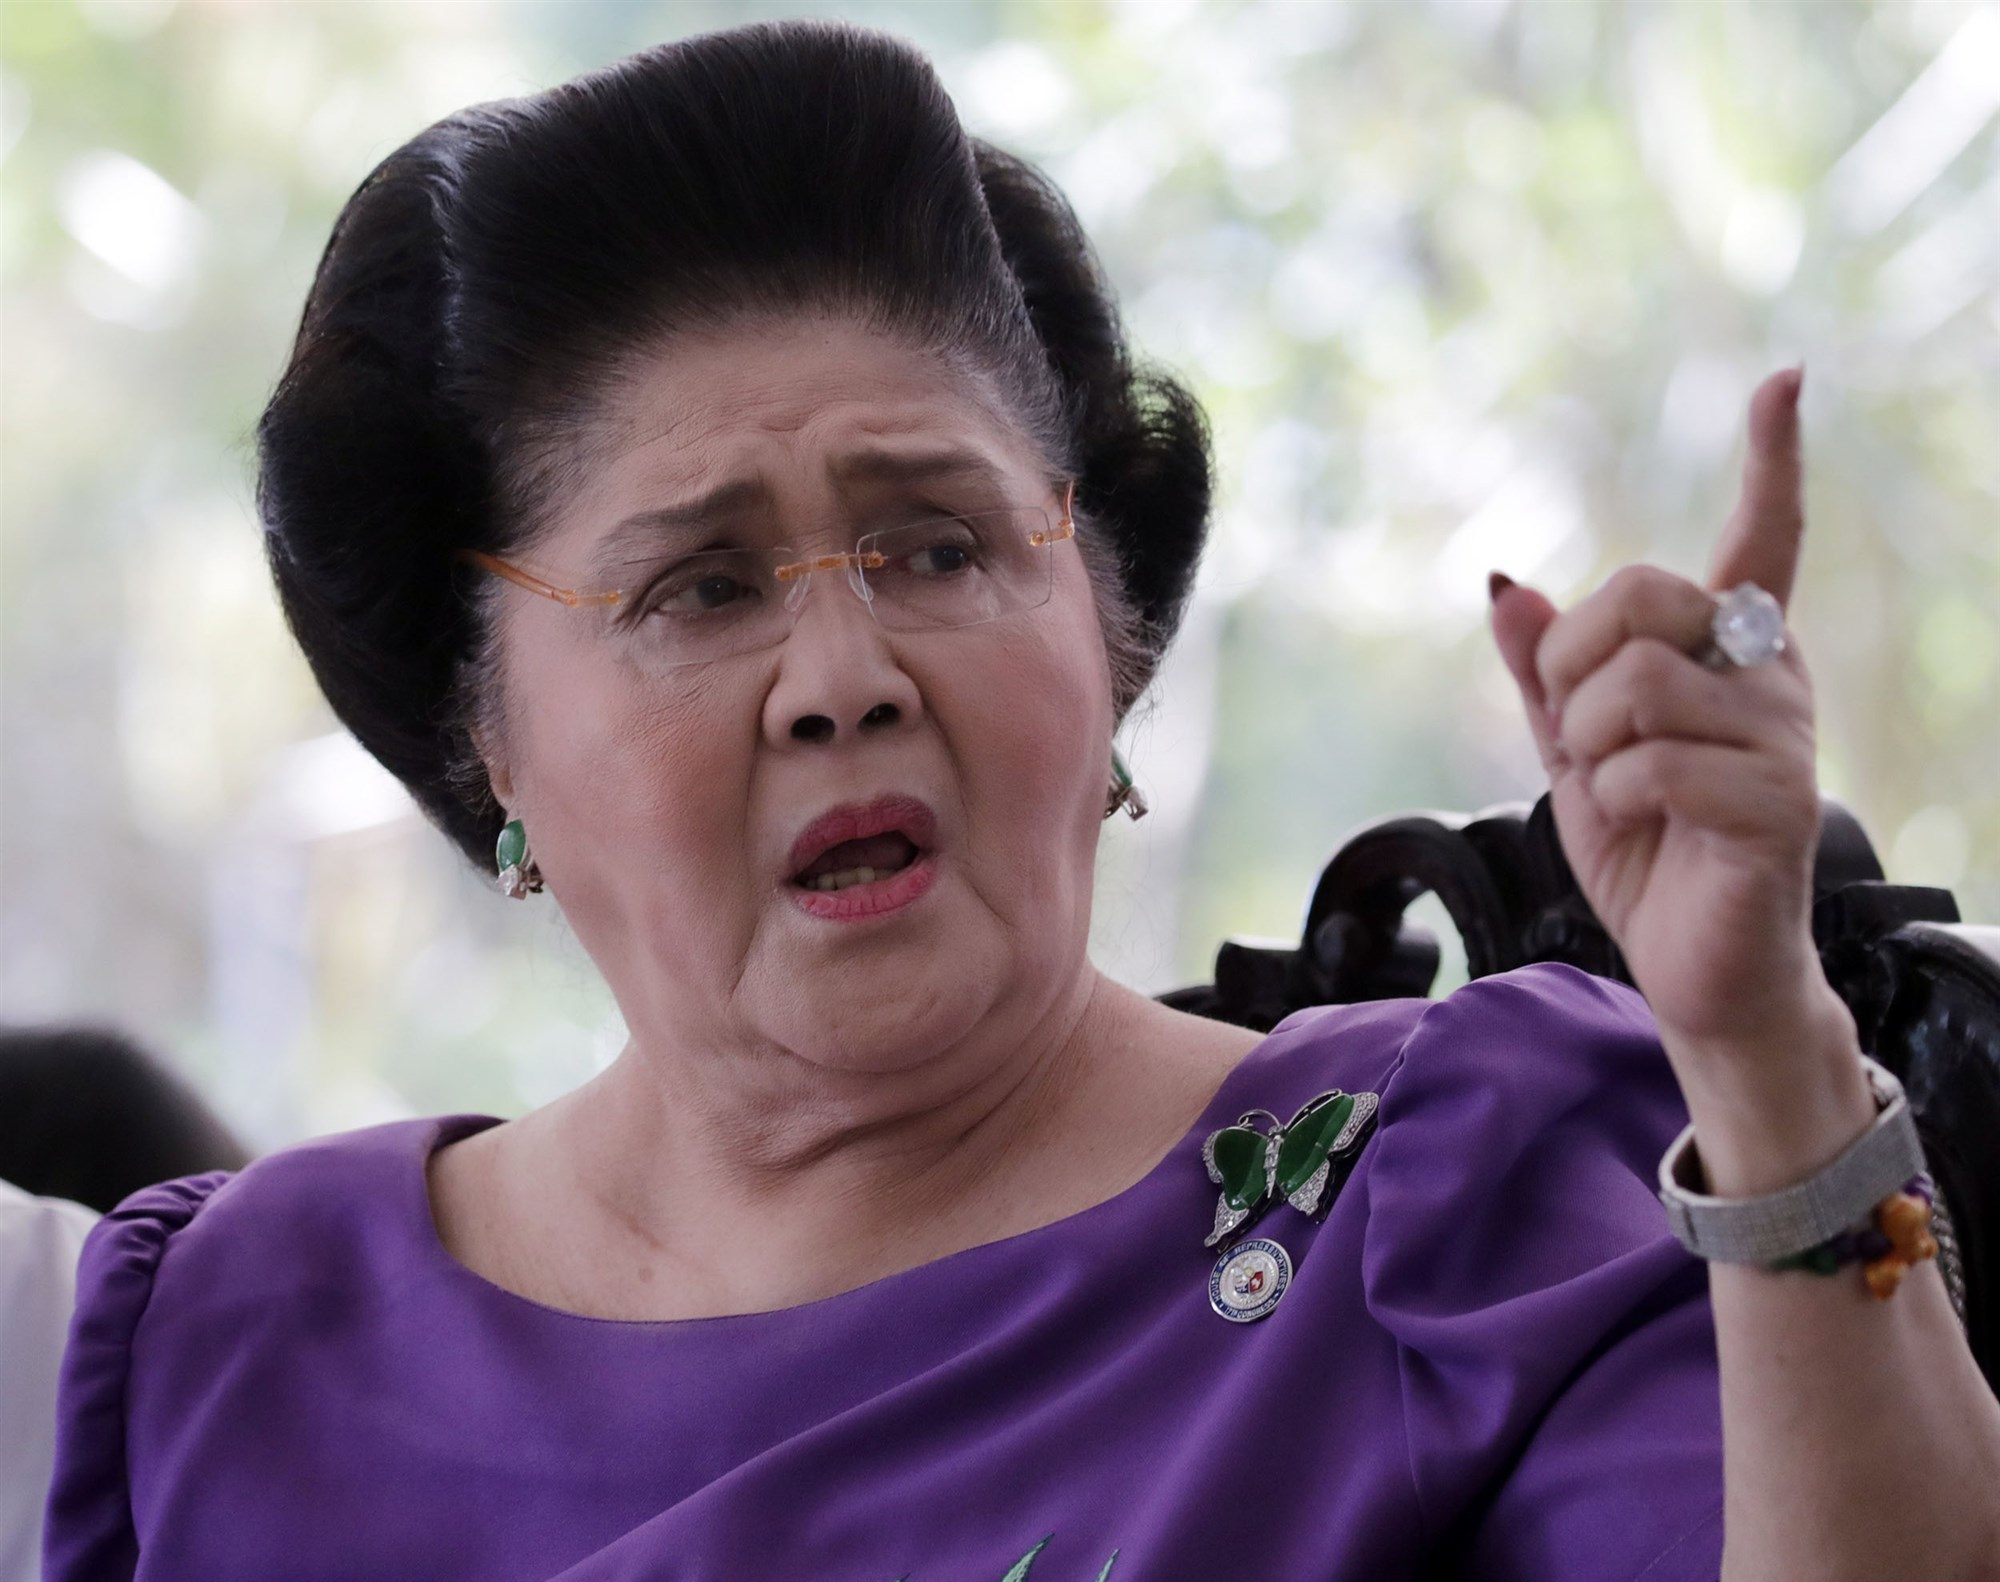 Imelda Marcos convicted of graft, sentenced to prison